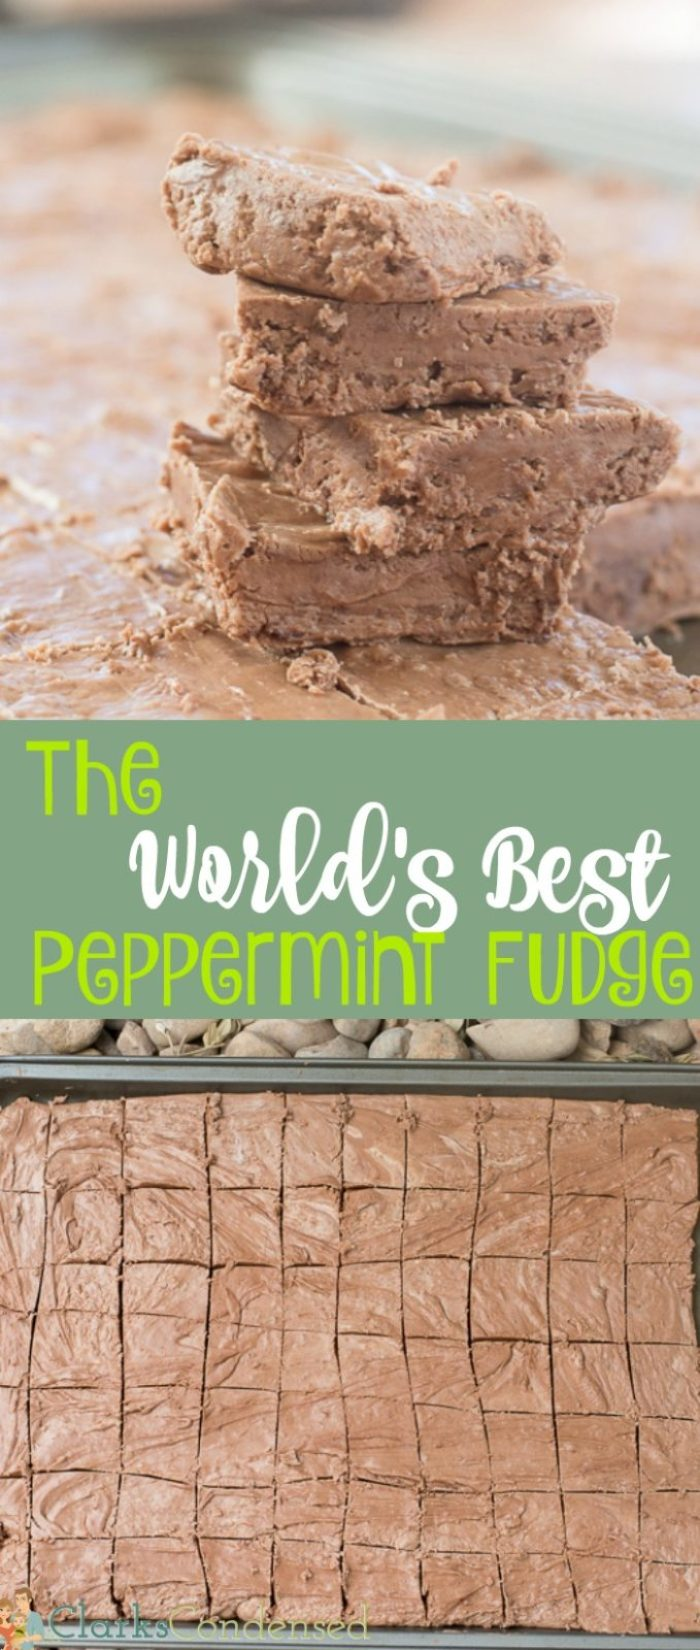 This peppermint fudge recipe has been passed down in my family, and it's always a favorite during the holidays. It's very easy to make and very yummy. Everyone loves it - it is definitely the world's best peppermint fudge recipe!